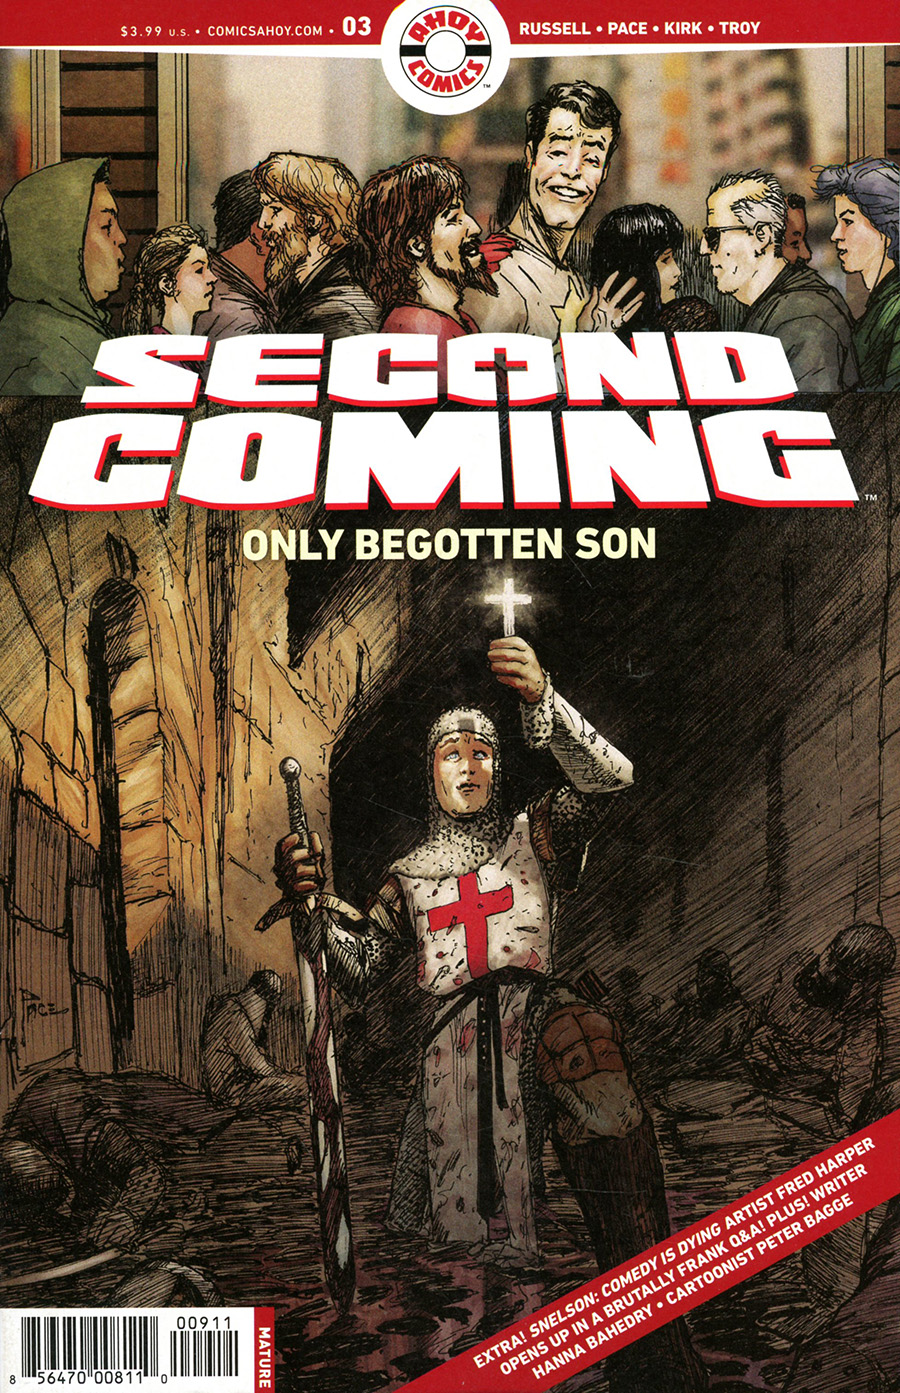 Second Coming Only Begotten Son #3